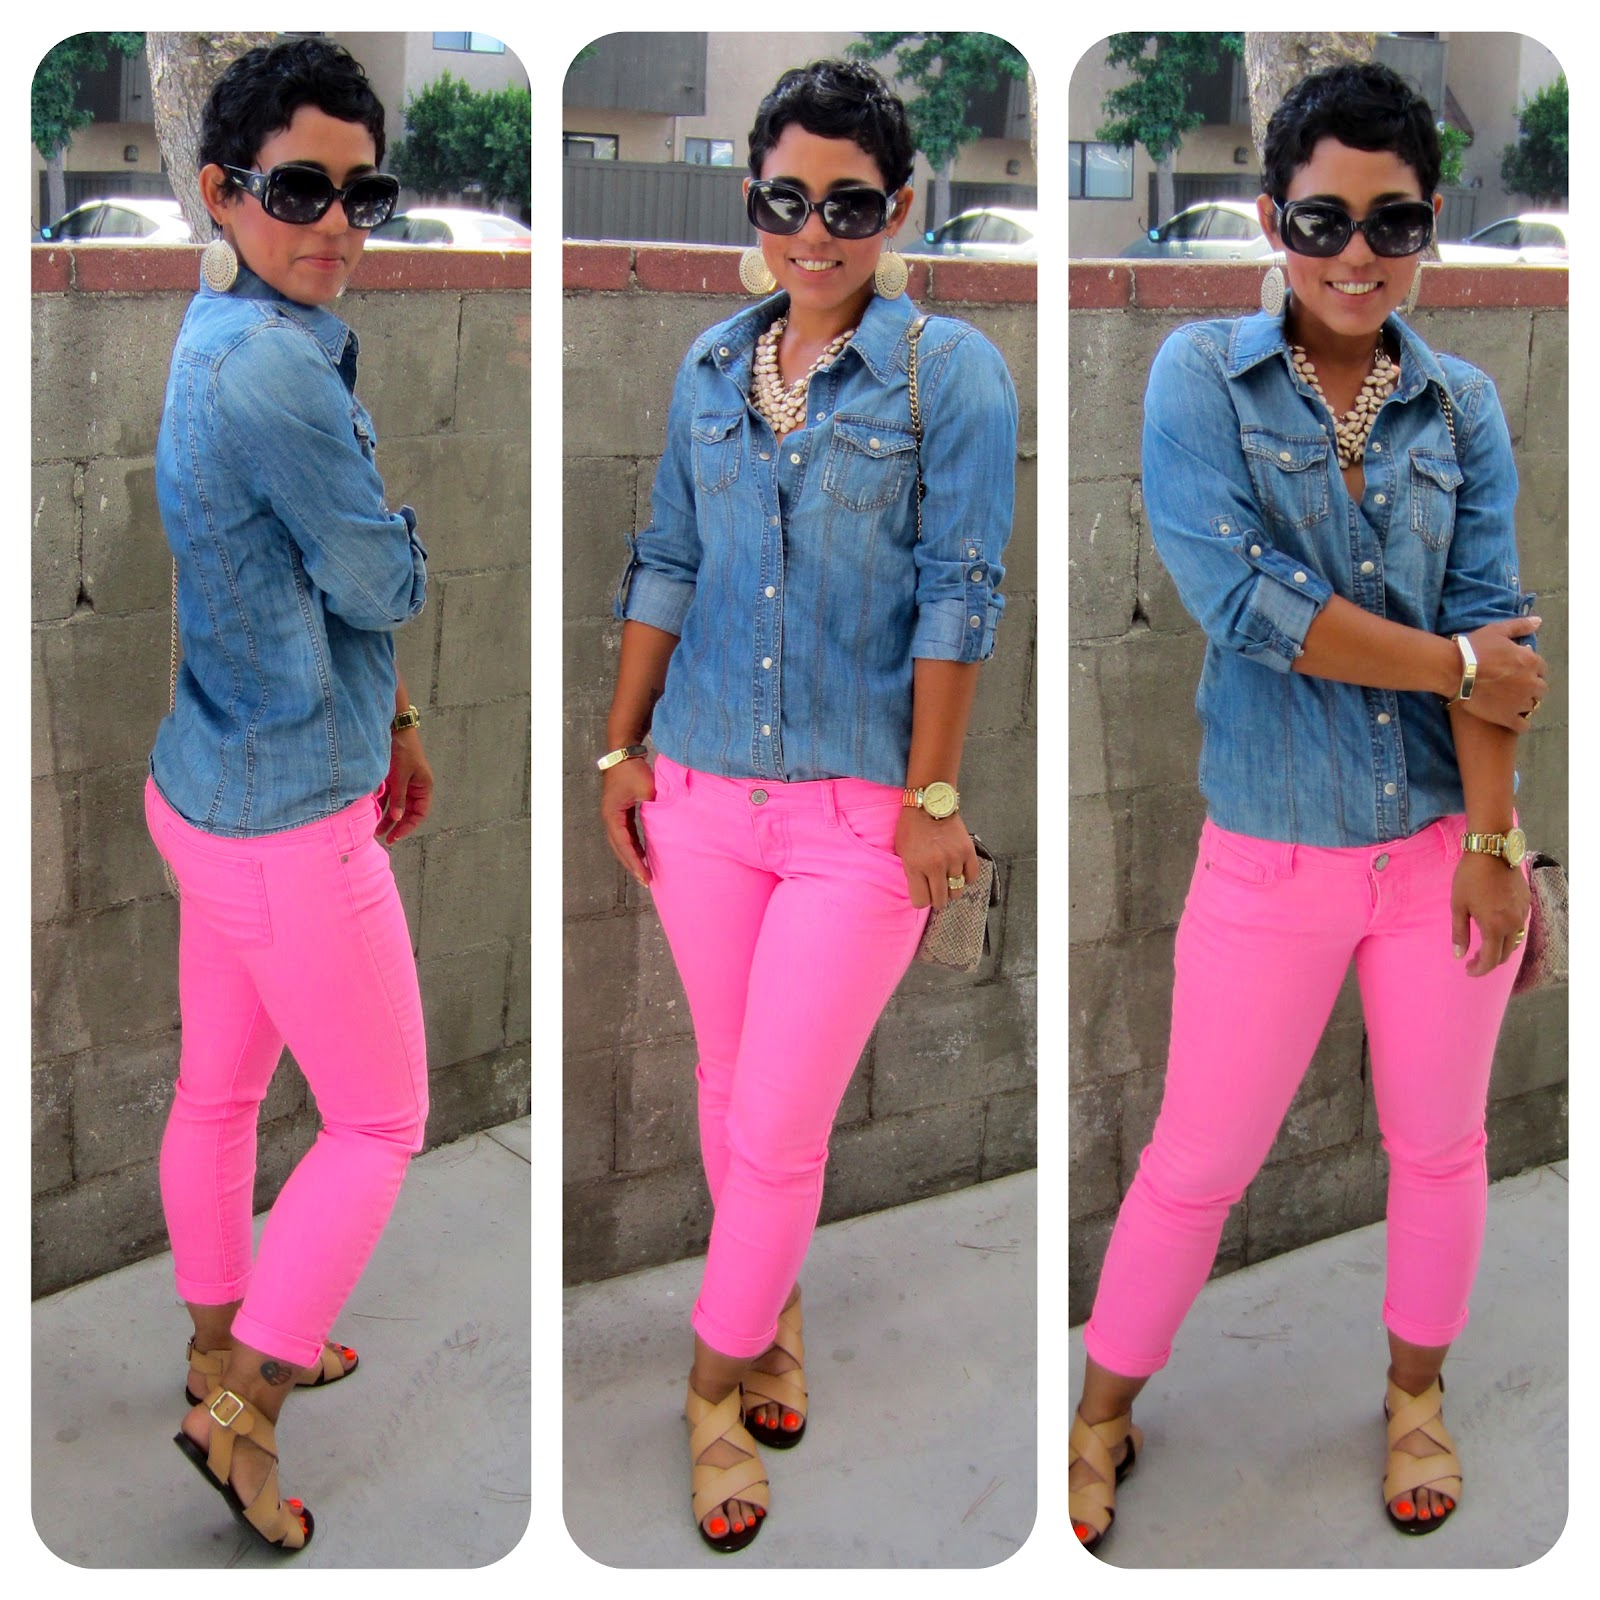 1000+ images about Neon pink short pants on Pinterest